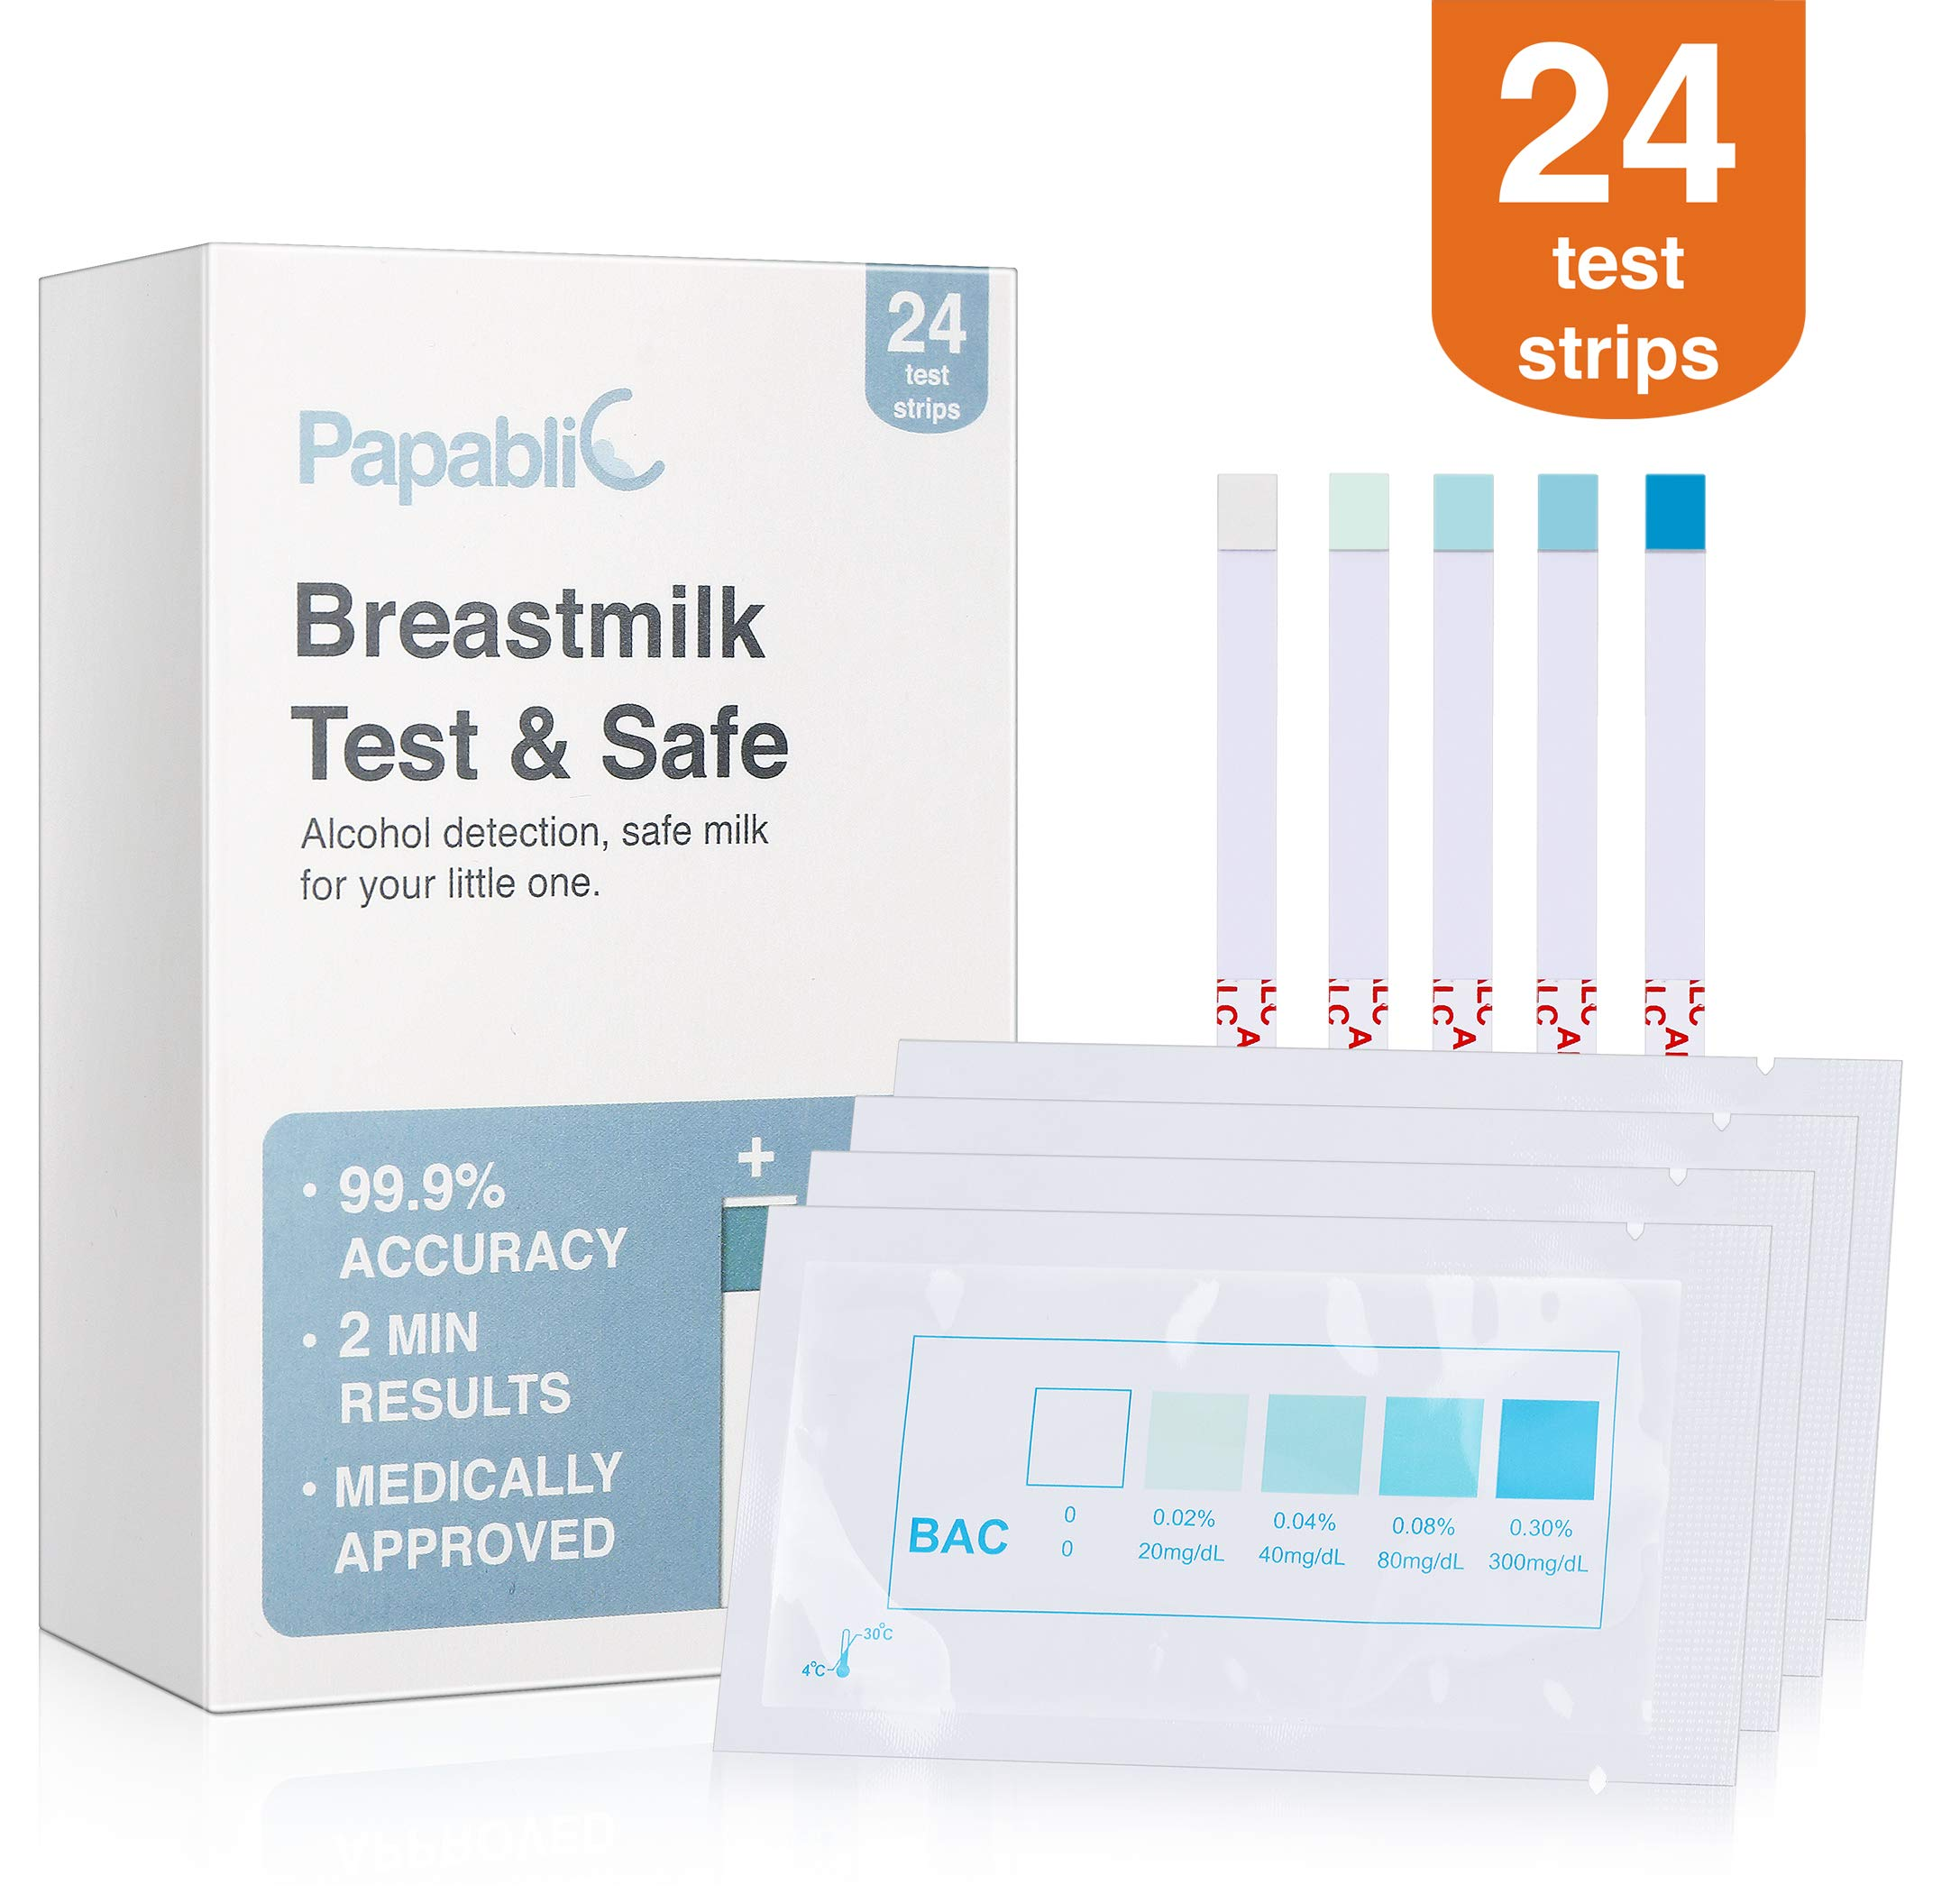 [24-Count] Papablic Test & Safe Breastmilk Alcohol Test Strips, 2-min Quick and Precise Detection for Alcohol in Breastmilk